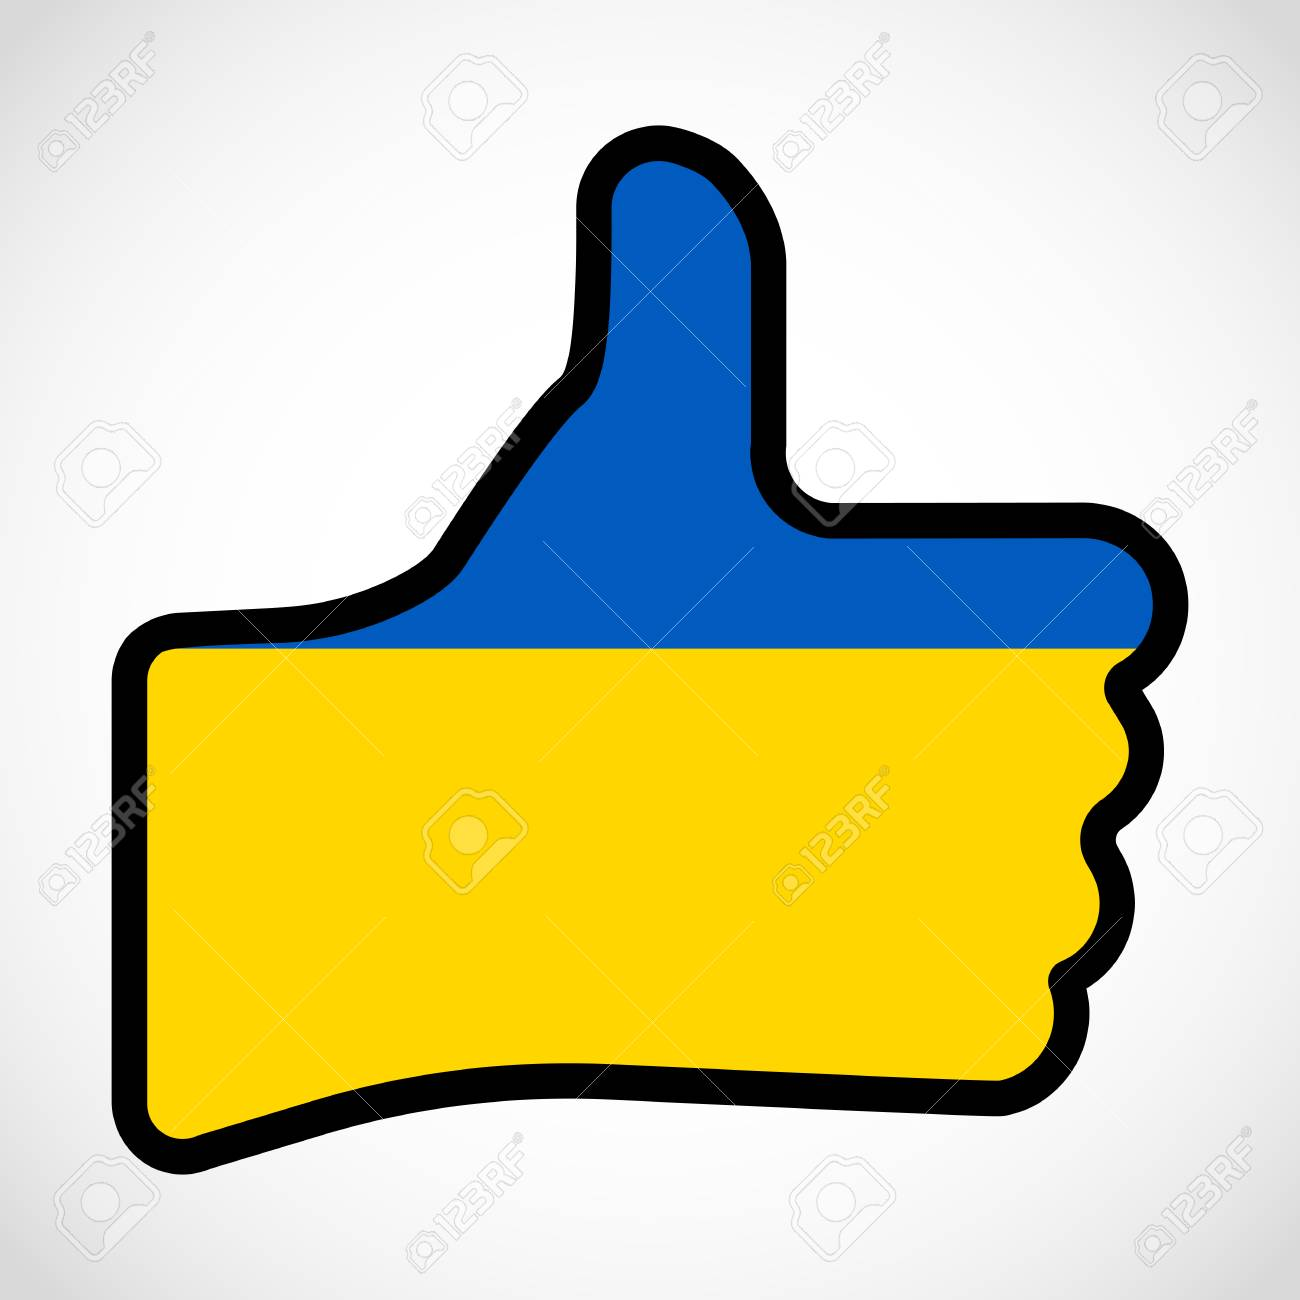 Flag Of Ukraine In The Shape Of Hand With Thumb Up Gesture Of